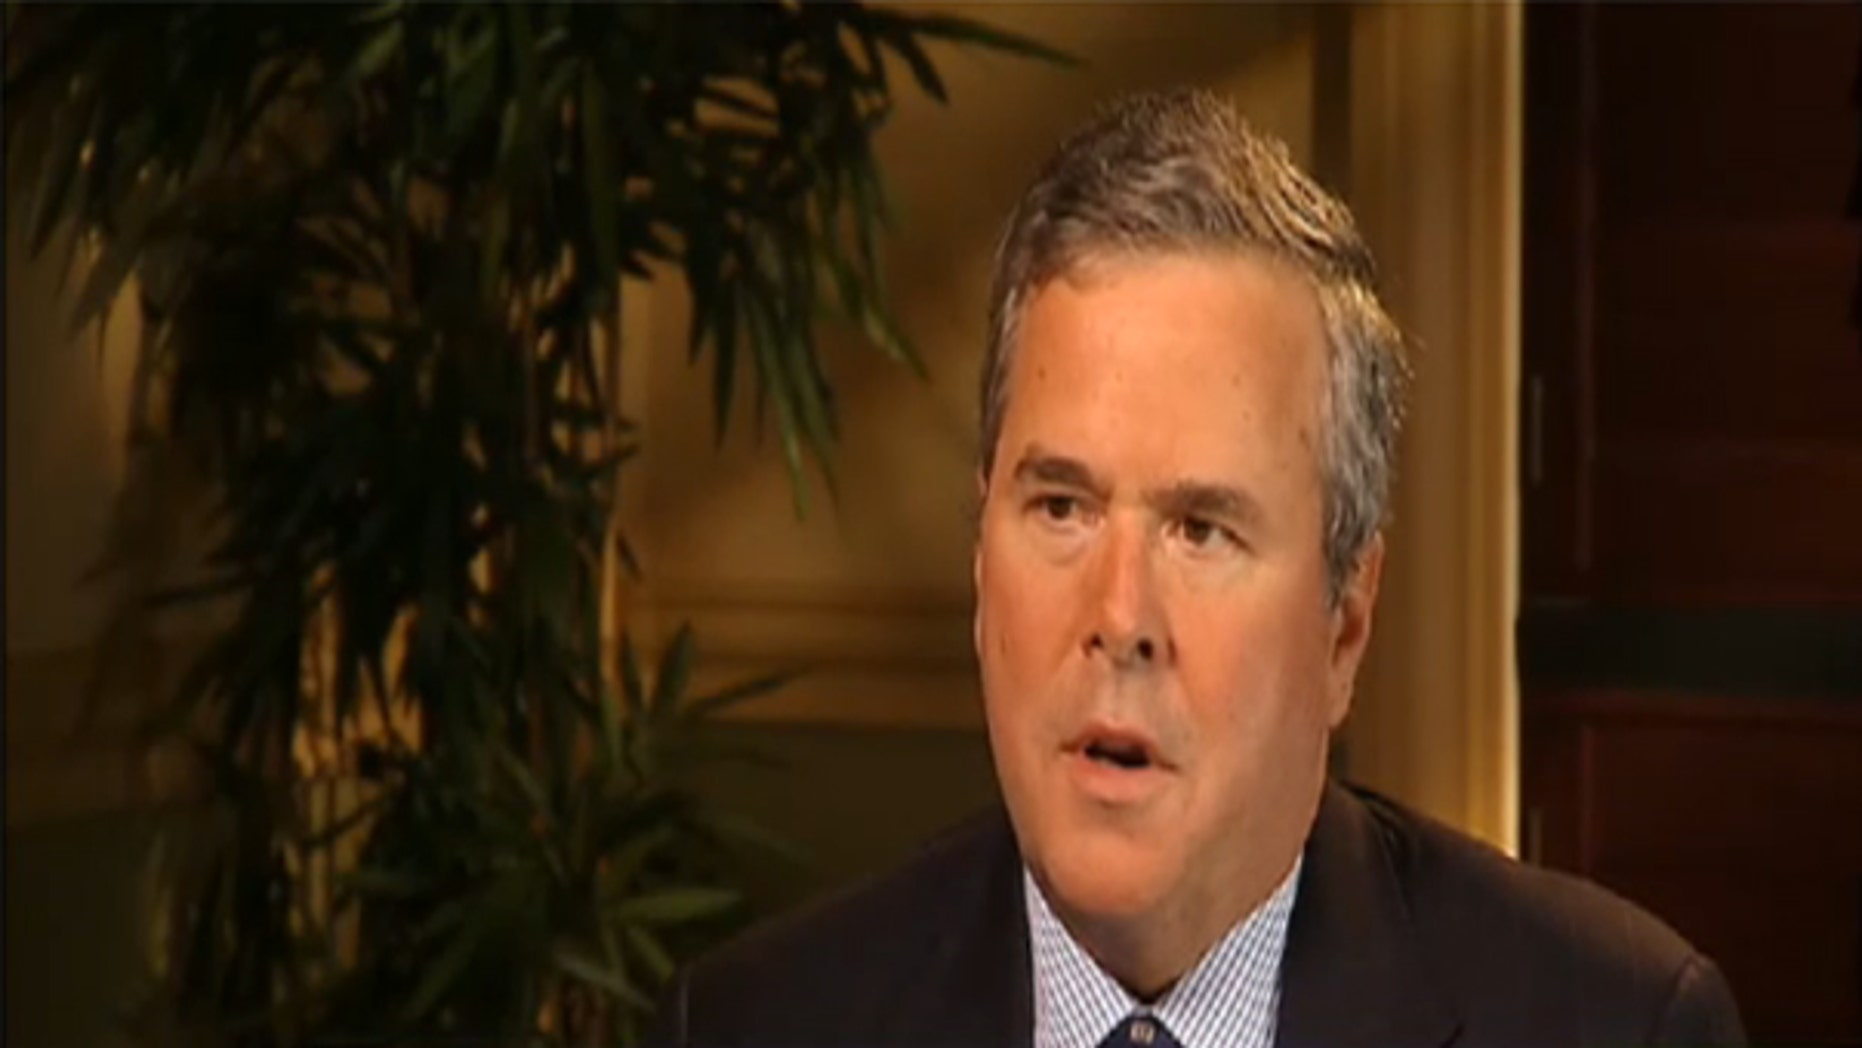 Former Florida Gov. Jeb Bush speaks to Fox & Friends in a rare interview, February 18, 2010. (FNC)